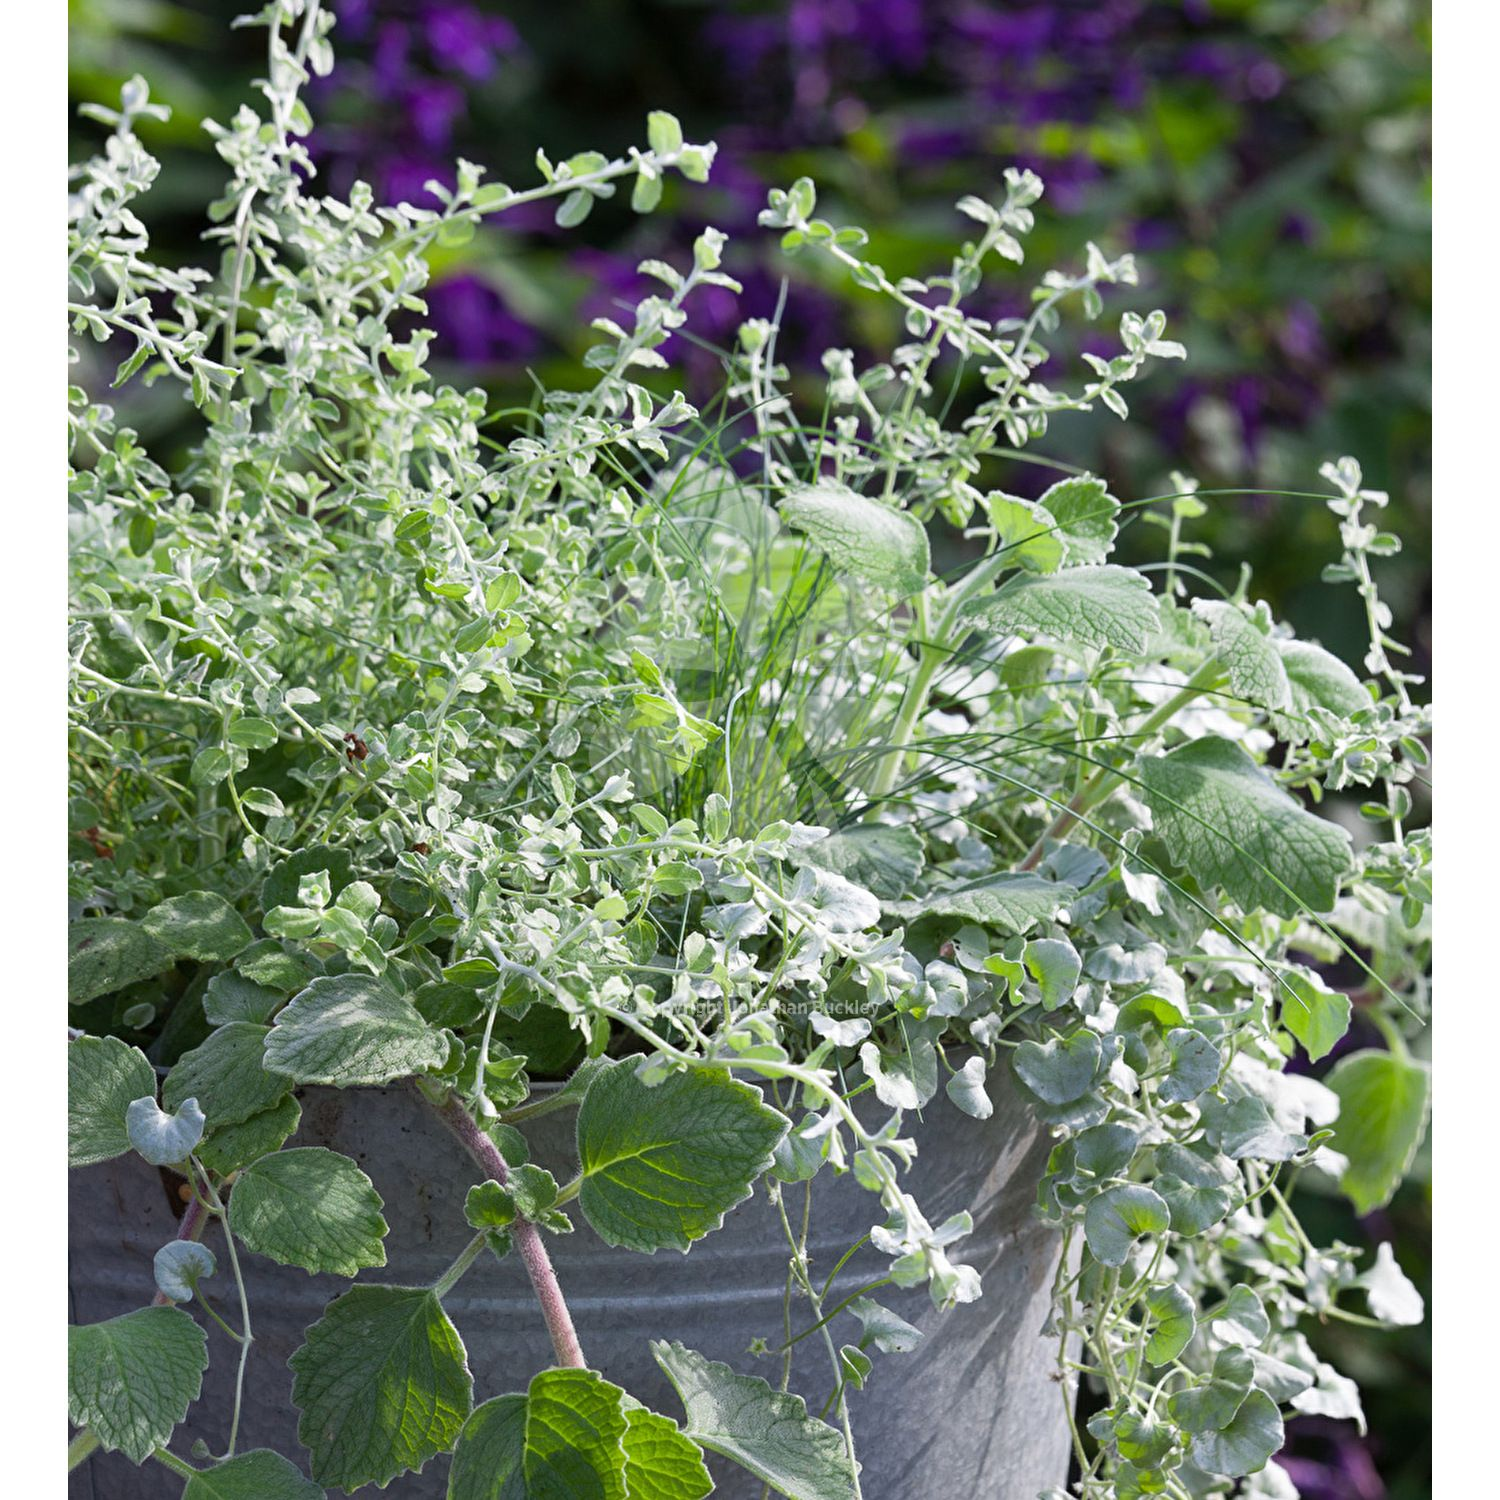 Combination of silver-leaved container plants - easy to grow & low maintenance. If kept frost-free over the winter, this will last from one year to the next.